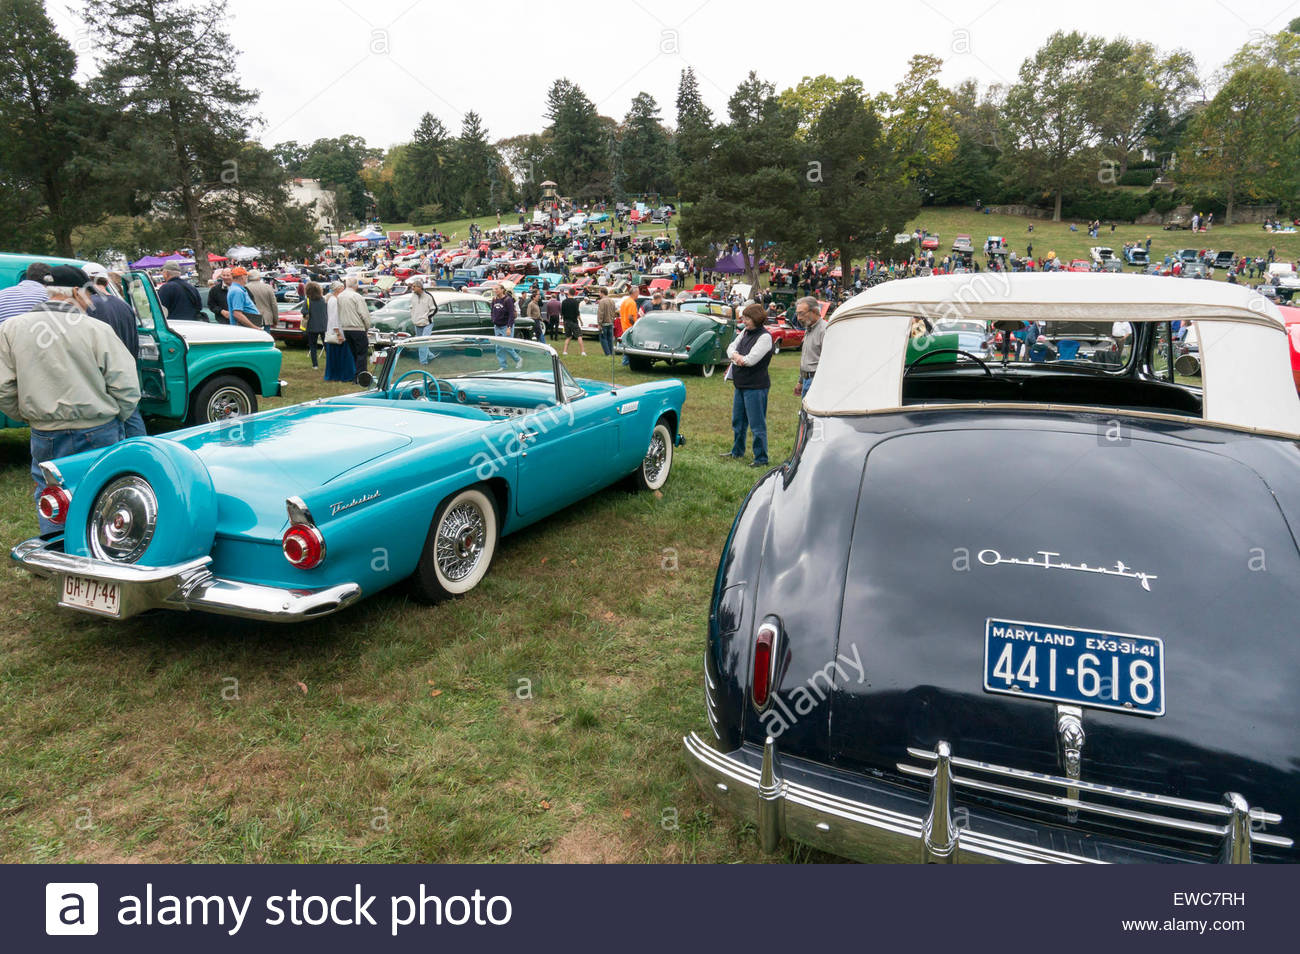 A 1941 Packard 120 and 1956 Ford Thunderbird convertibles at the 2014 Rockville Antique & Classic Car Show in - Stock Image